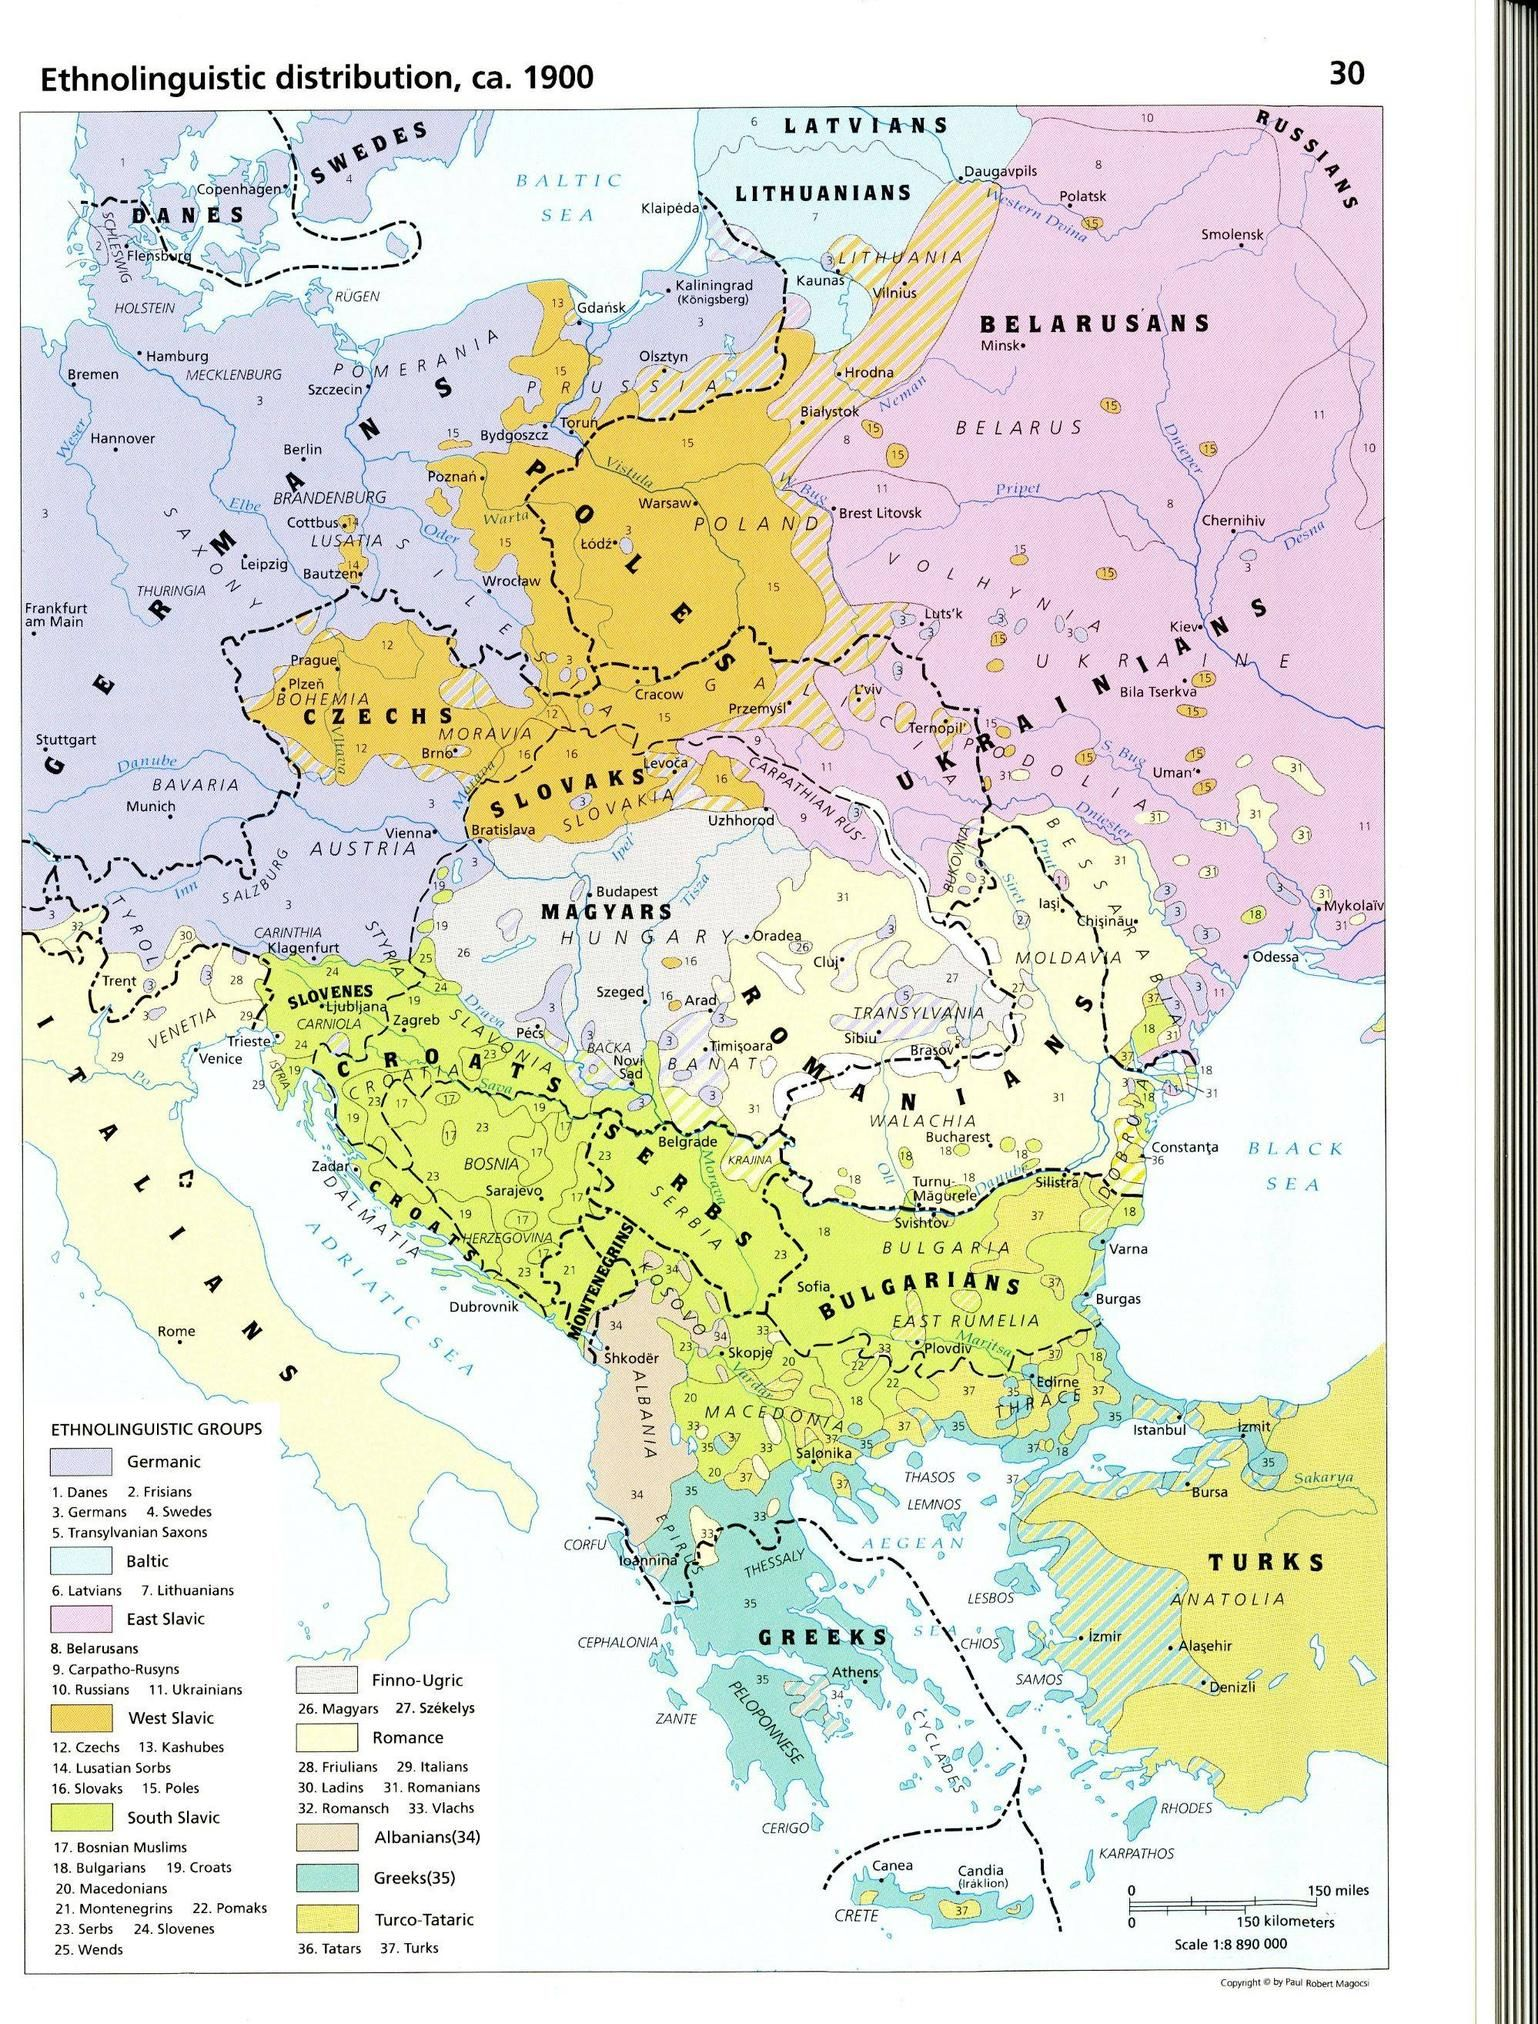 ethnolinguistic distribution ca 1900 from the historical atlas of east central europe 1538x2024 imgur